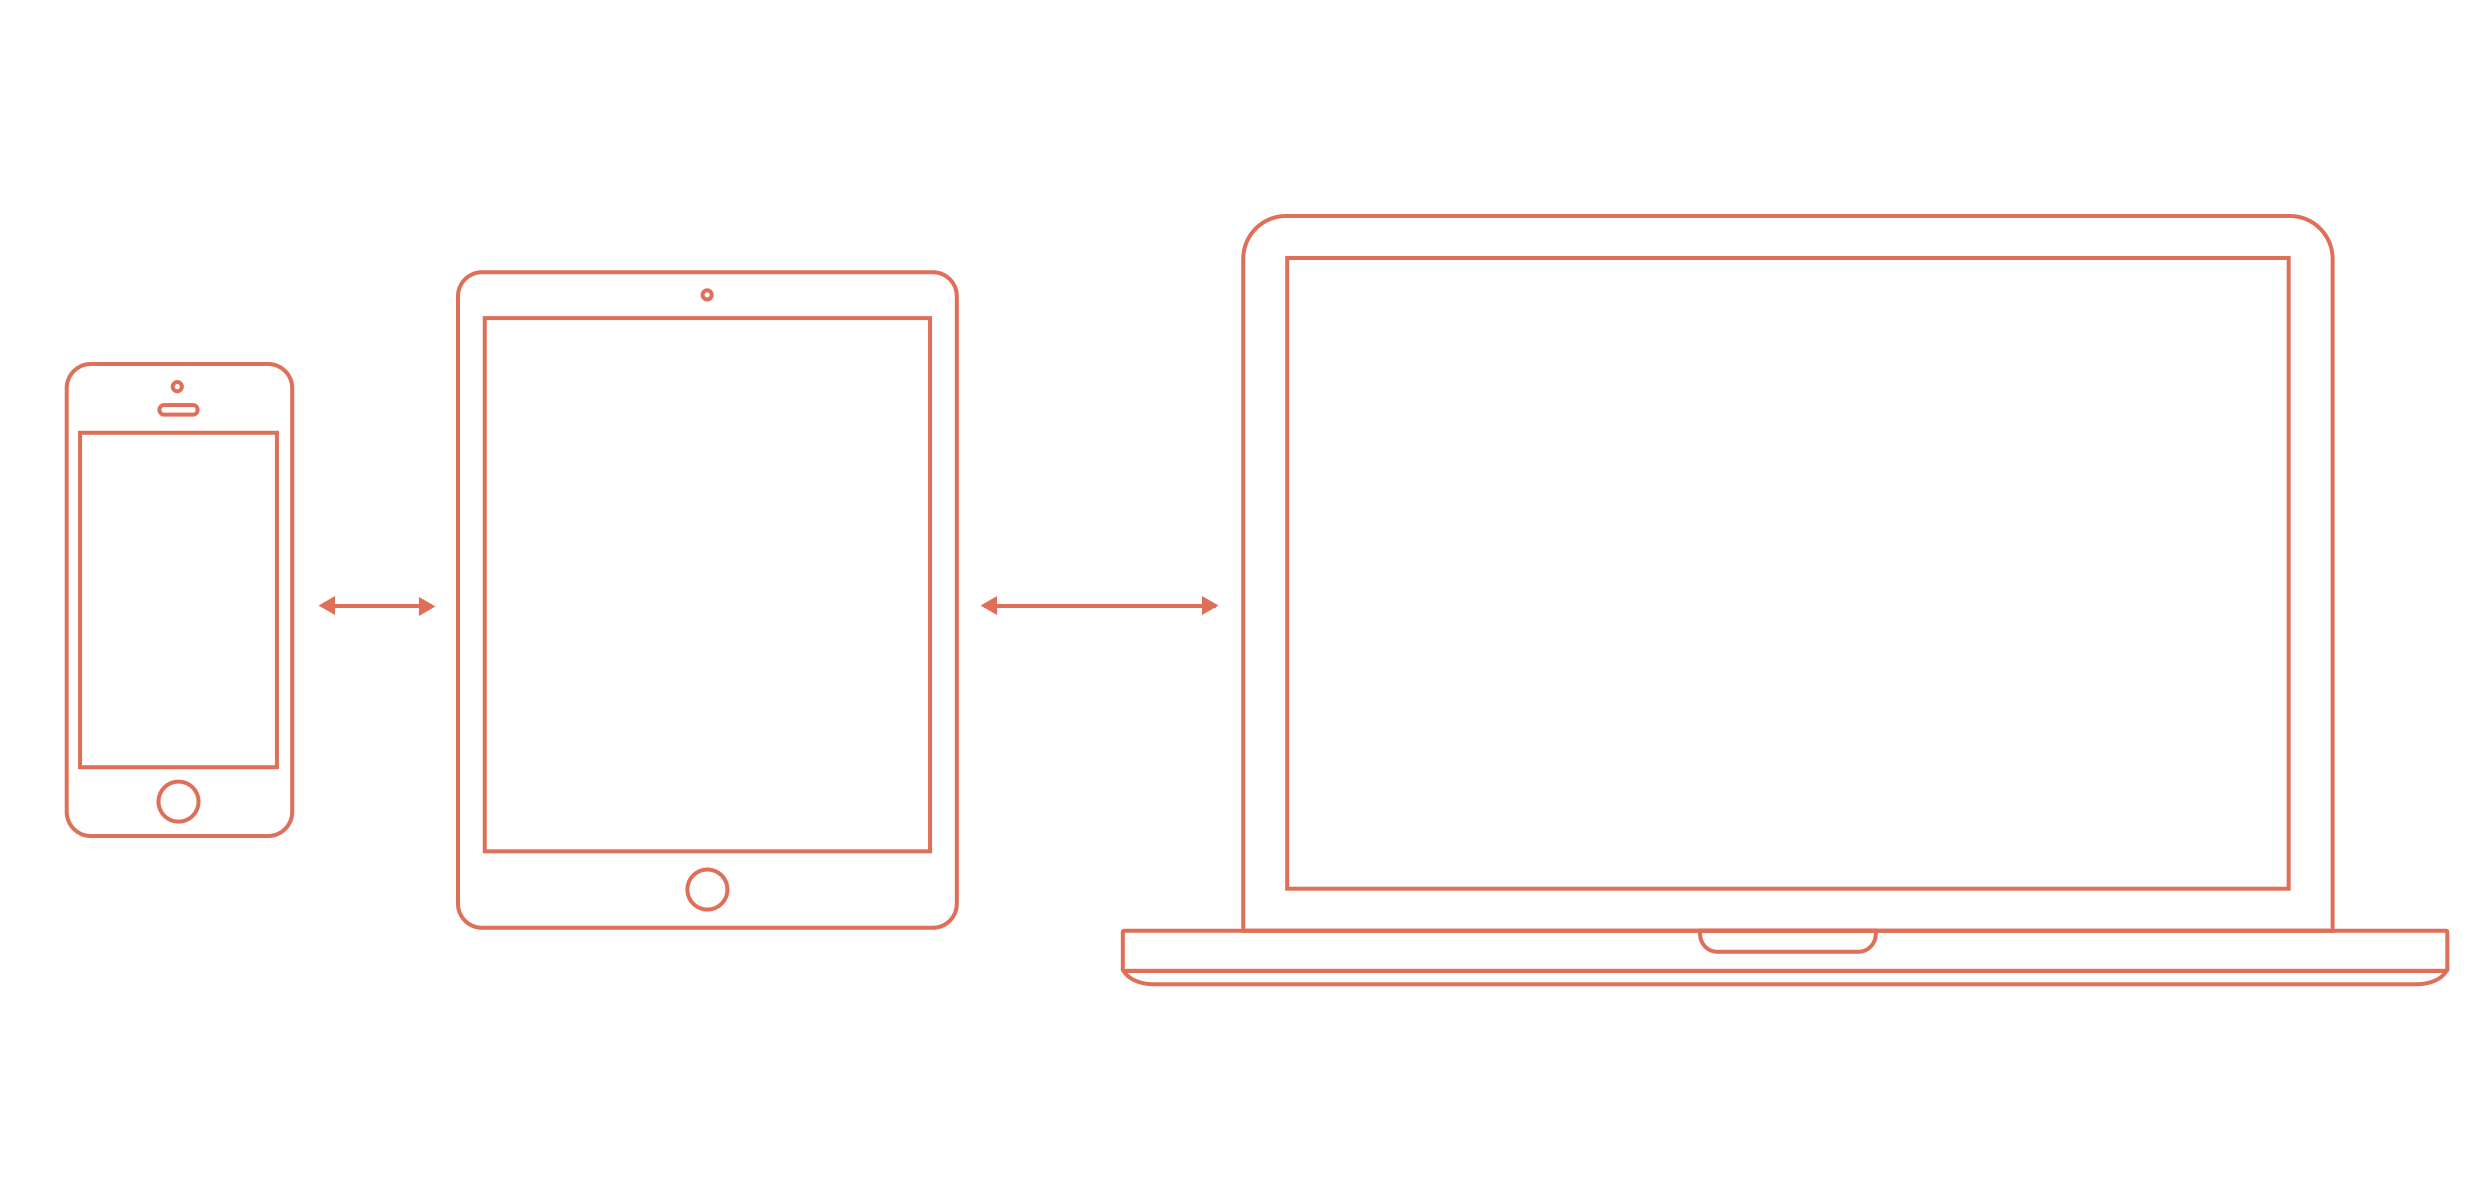 A line diagram depicting a phone, tablet and desktop